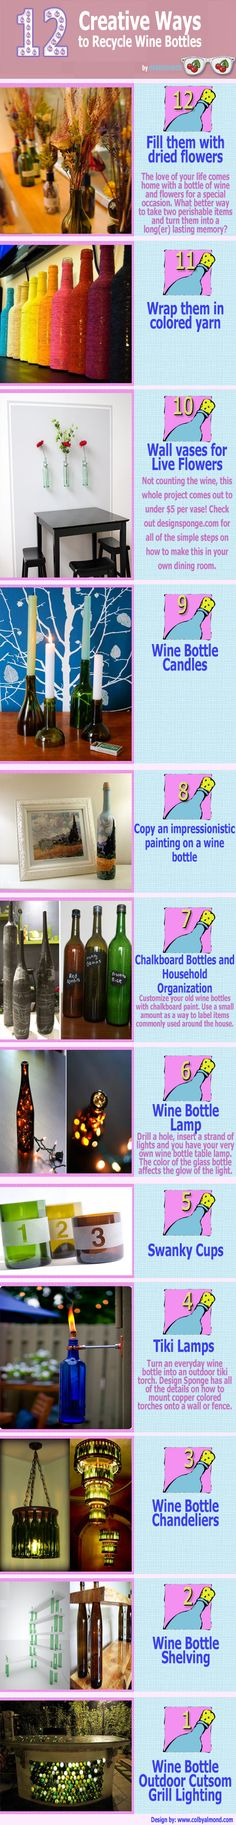 12 Cool Uses for Empty Wine bottles